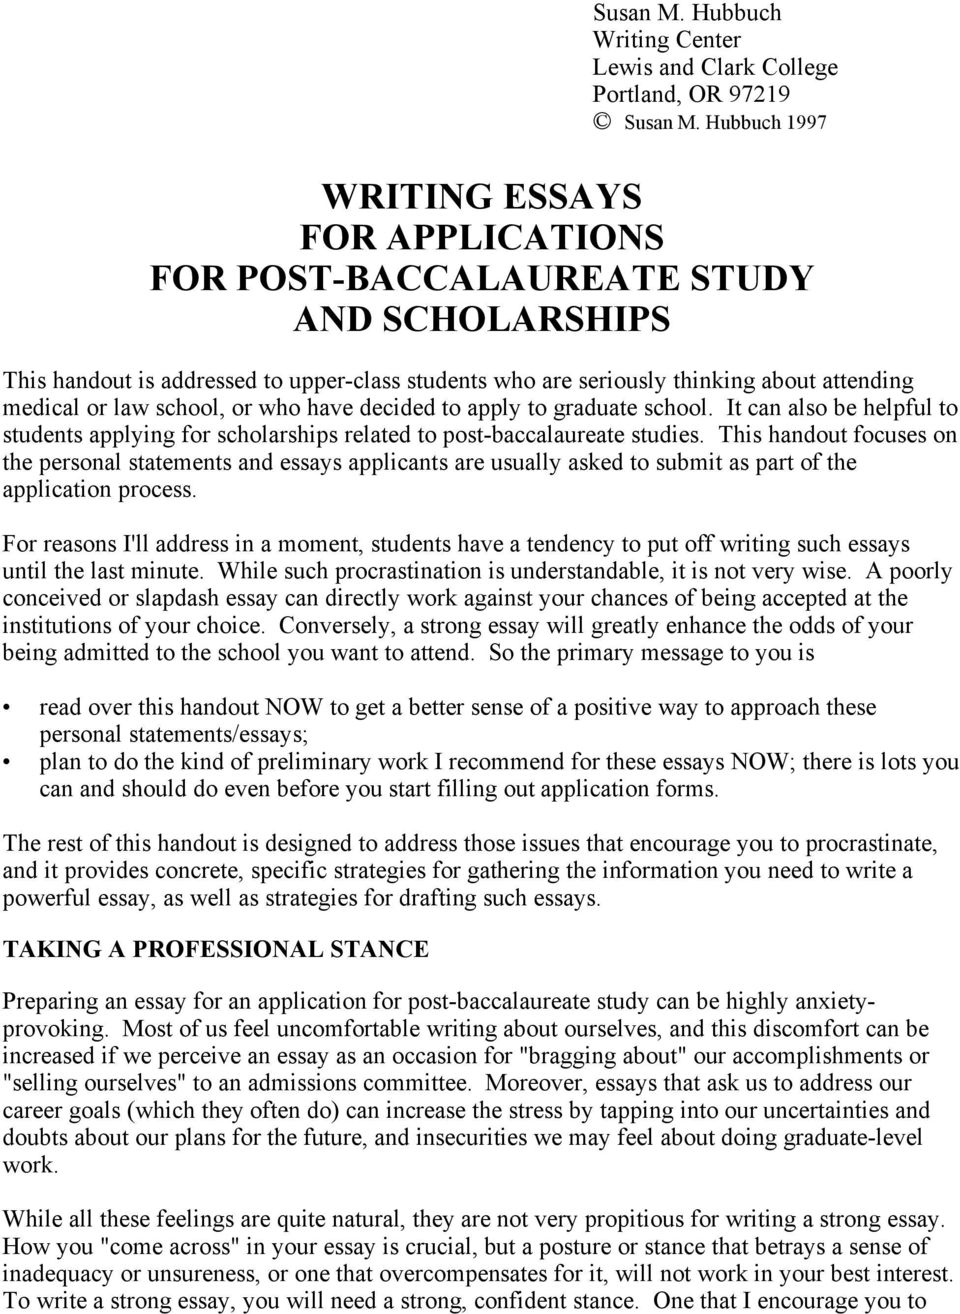 Poverty Essay Thesis School Or Who Have Decided To Apply To Graduate School It Can Also Be International Business Essays also American Dream Essay Thesis Writing Essays For Applications For Postbaccalaureate Study And  Essays On Health Care Reform